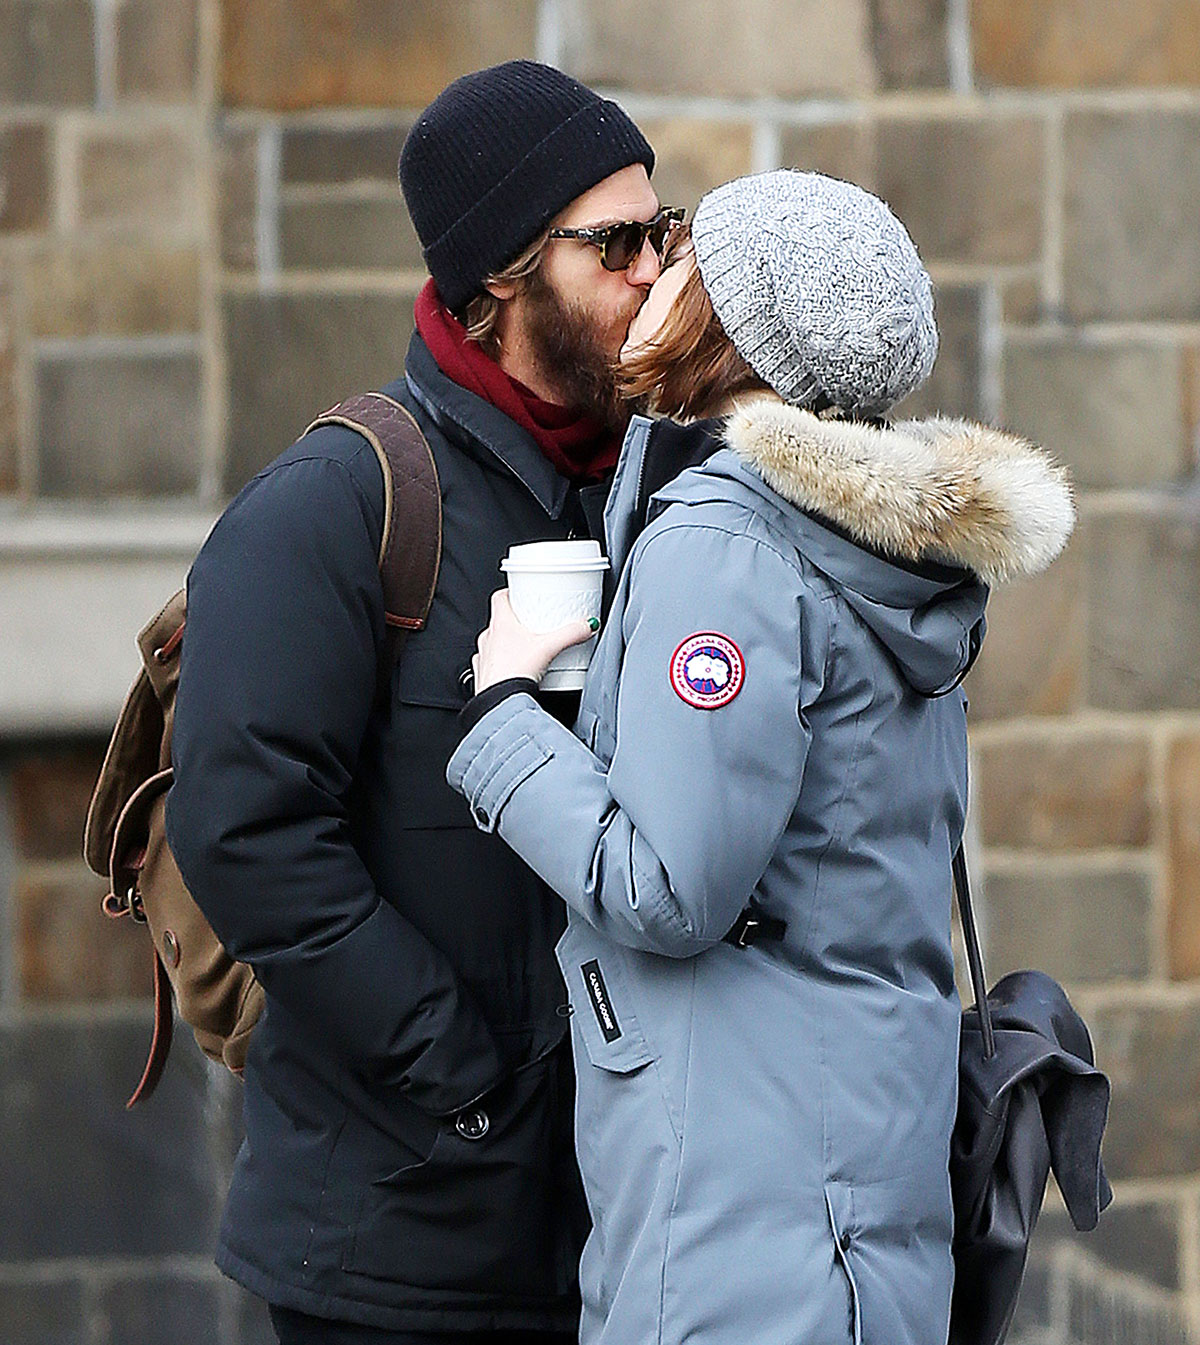 EMMA STONE and Andrew Garfield Heading to a Movie Theate 6 These represent the very best hookup applications of 2020. A new times suggests latest hookups